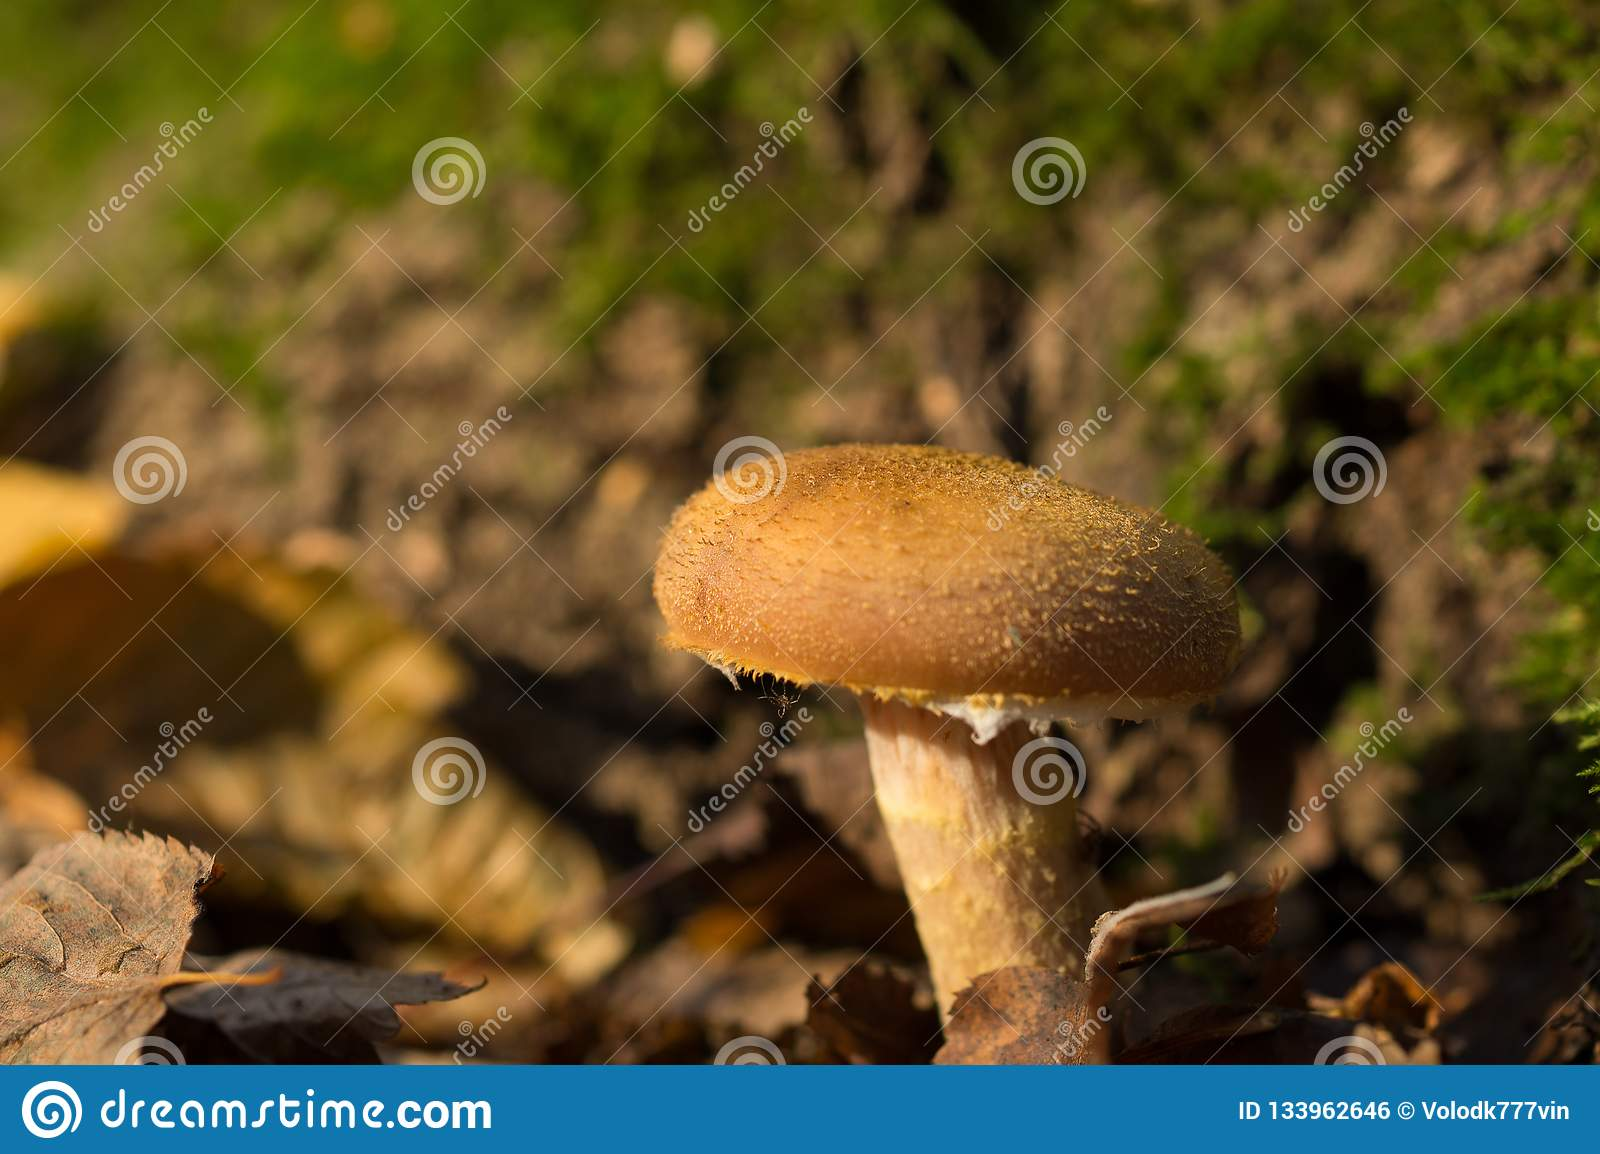 Big beautiful mushroom grows in the forest